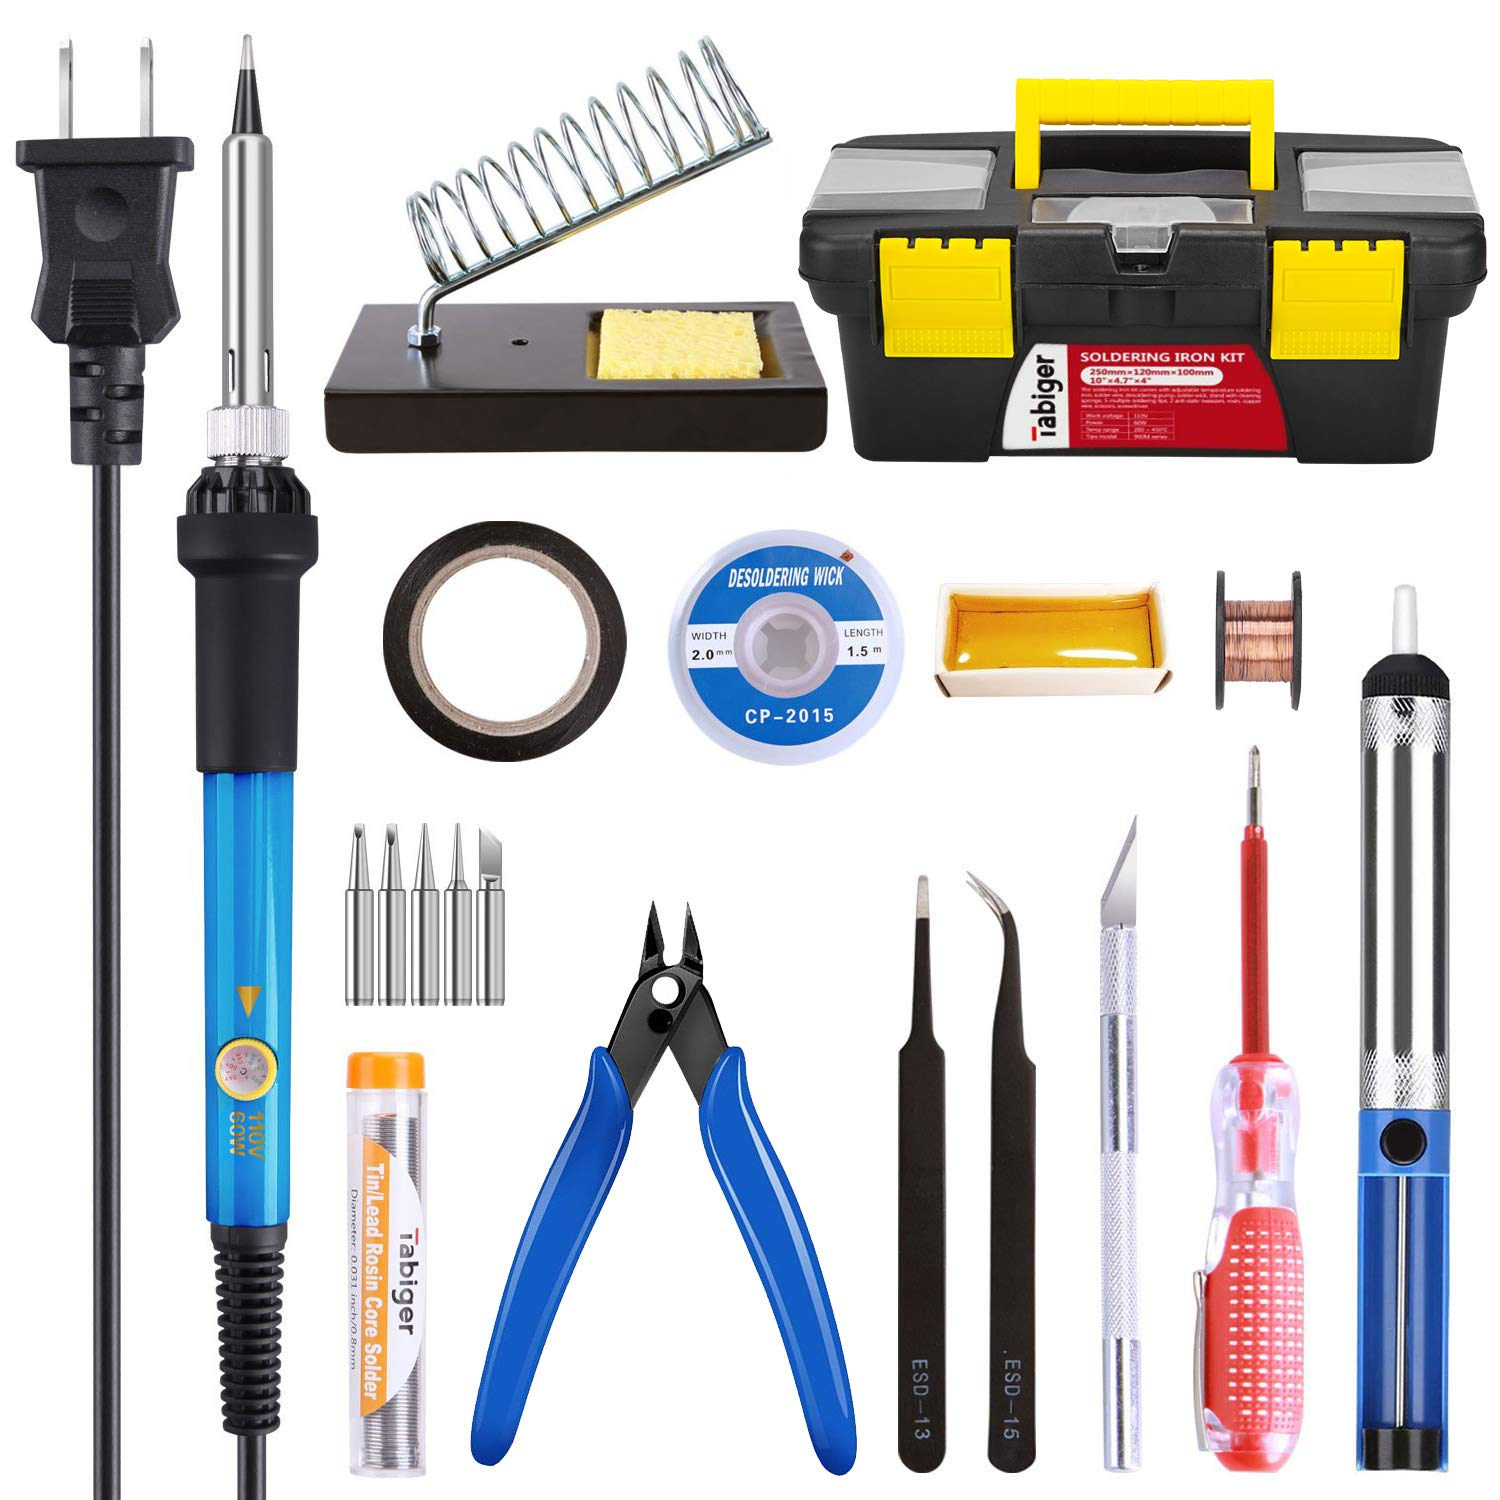 Soldering Iron Kit Electronics 60W Adjustable Temperature Soldering Iron, 5pcs Soldering Iron Tips, Solder, Rosin, Solder Wick, Stand and Other Soldering Kits in Portable Toolbox by Tabiger